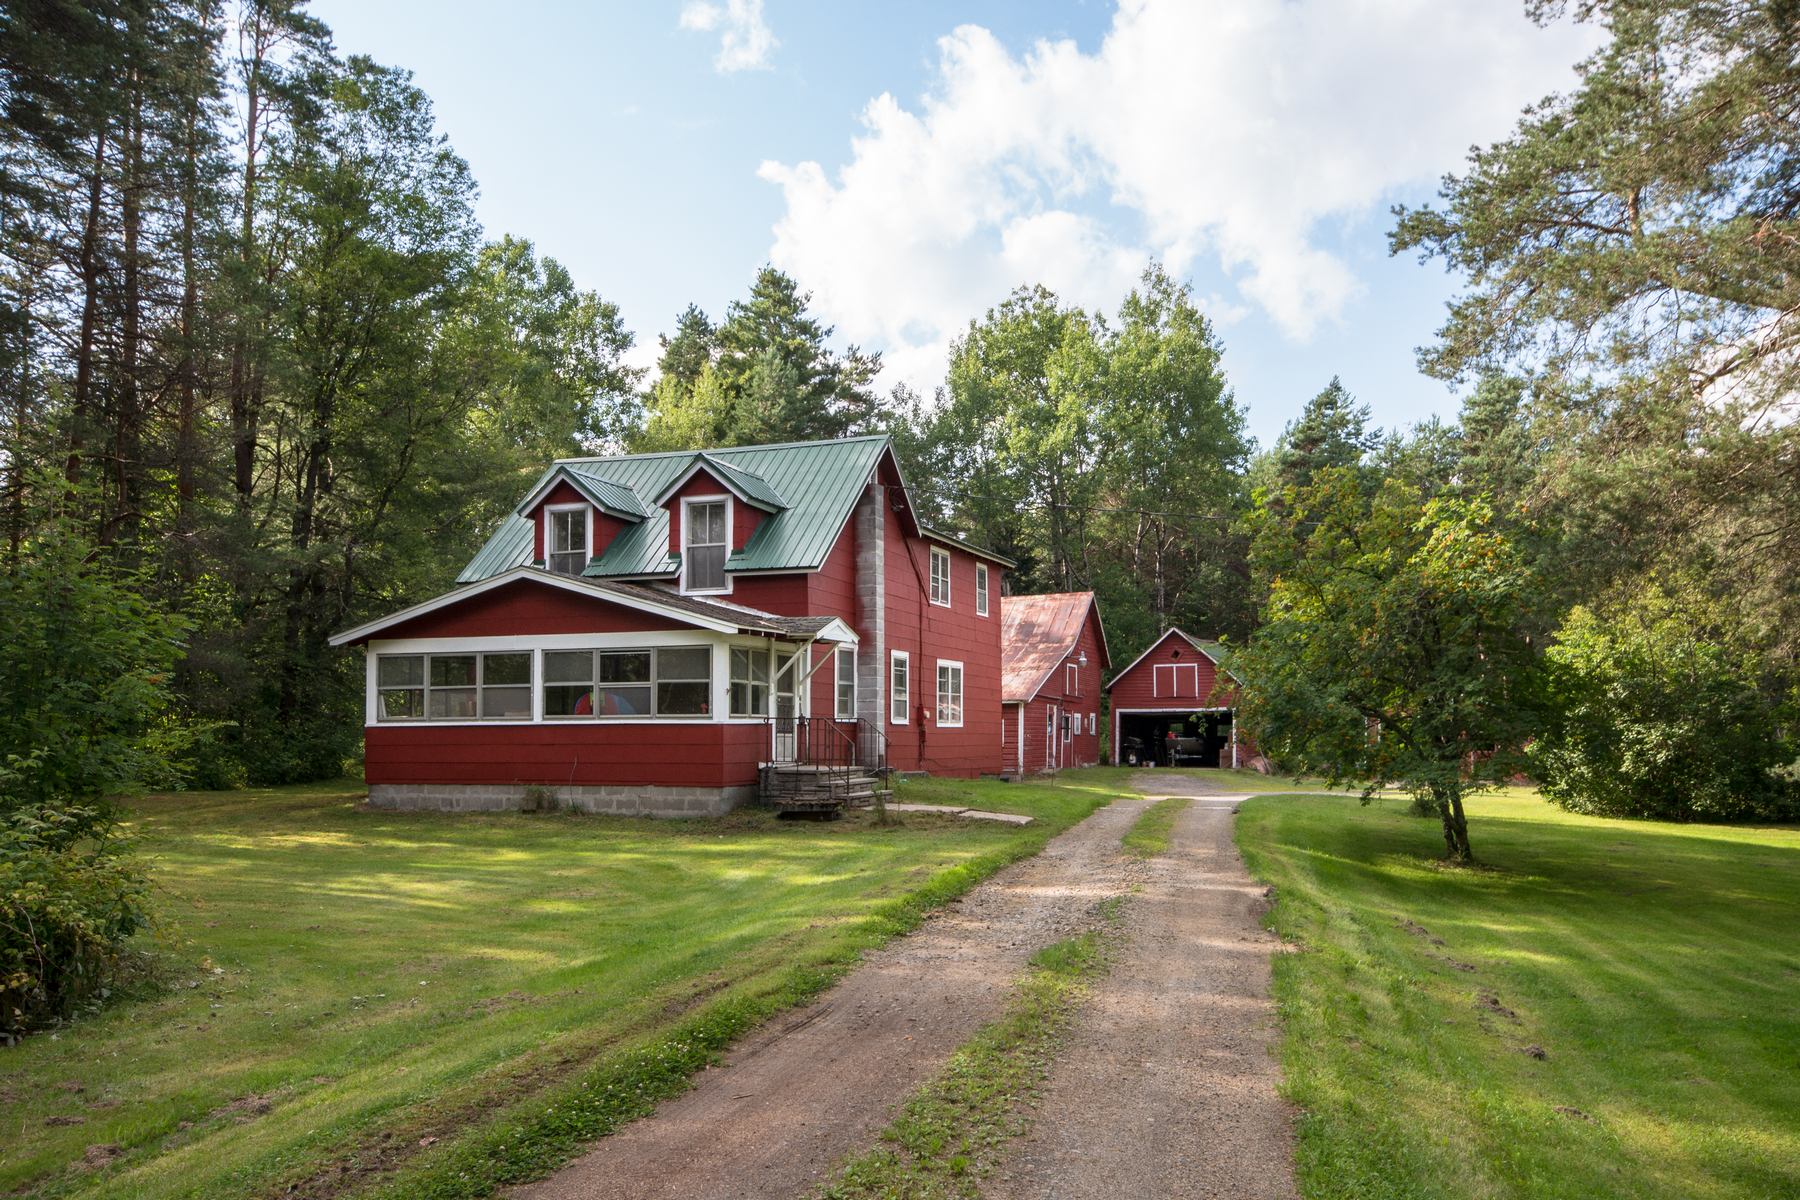 Single Family Home for Sale at Great Farmhouse on 3 Acres 401 State Route 186 Saranac Lake, New York 12983 United States